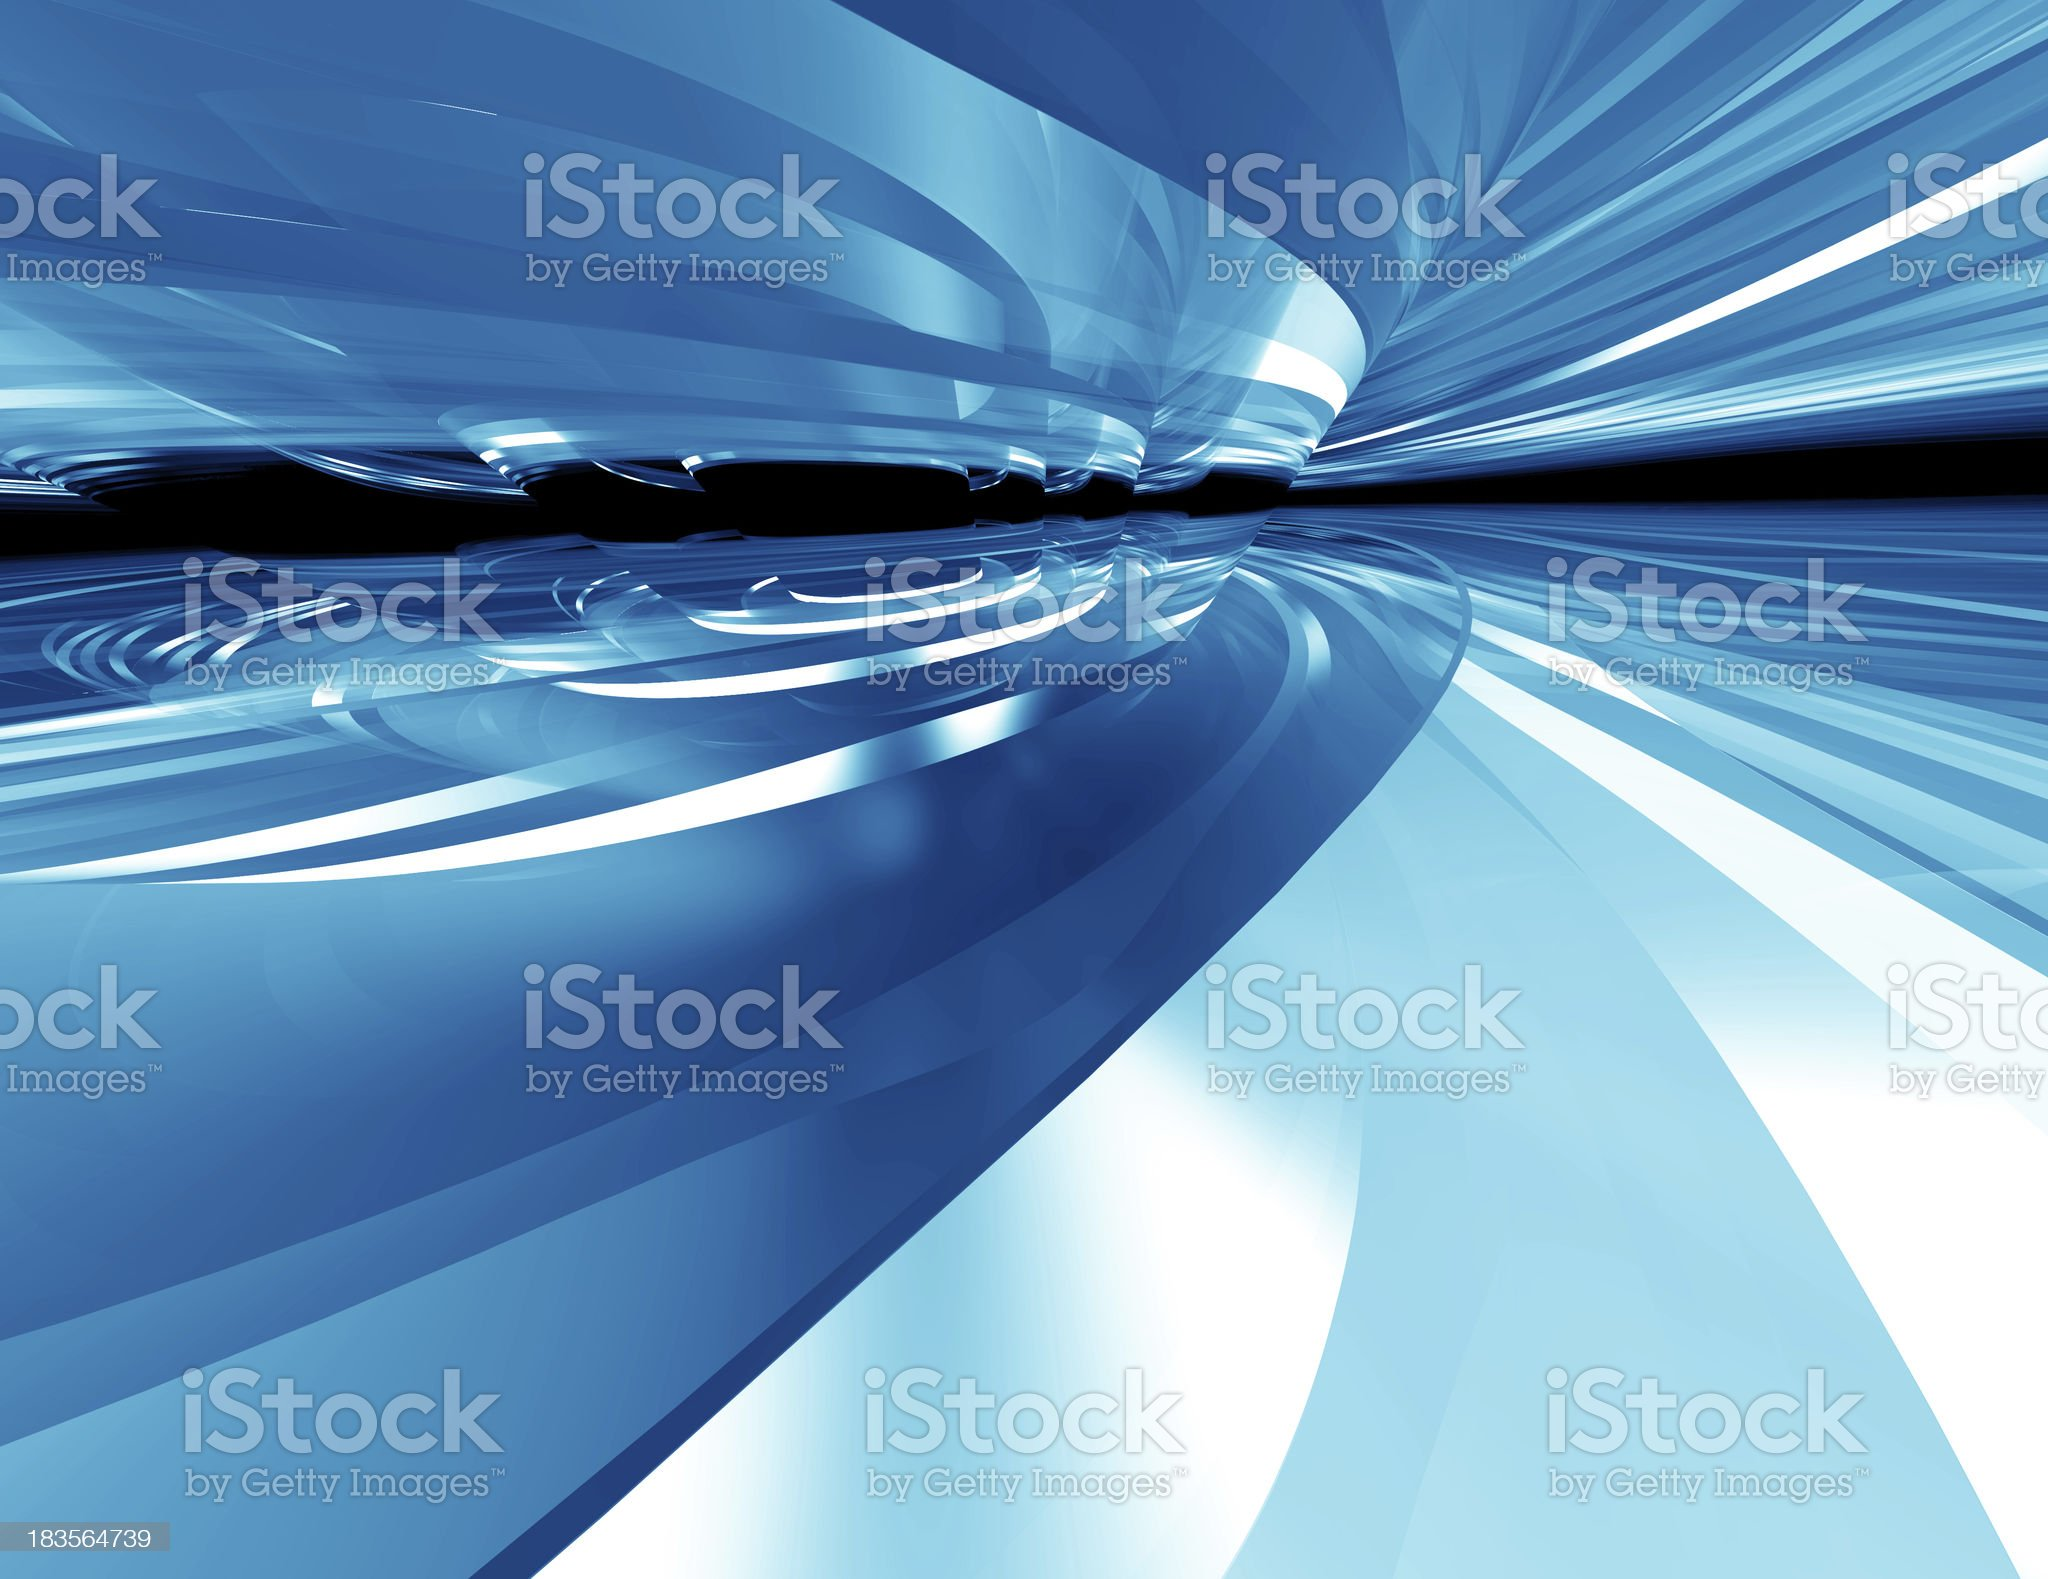 Abstract Blue Glass,concept background royalty-free stock photo